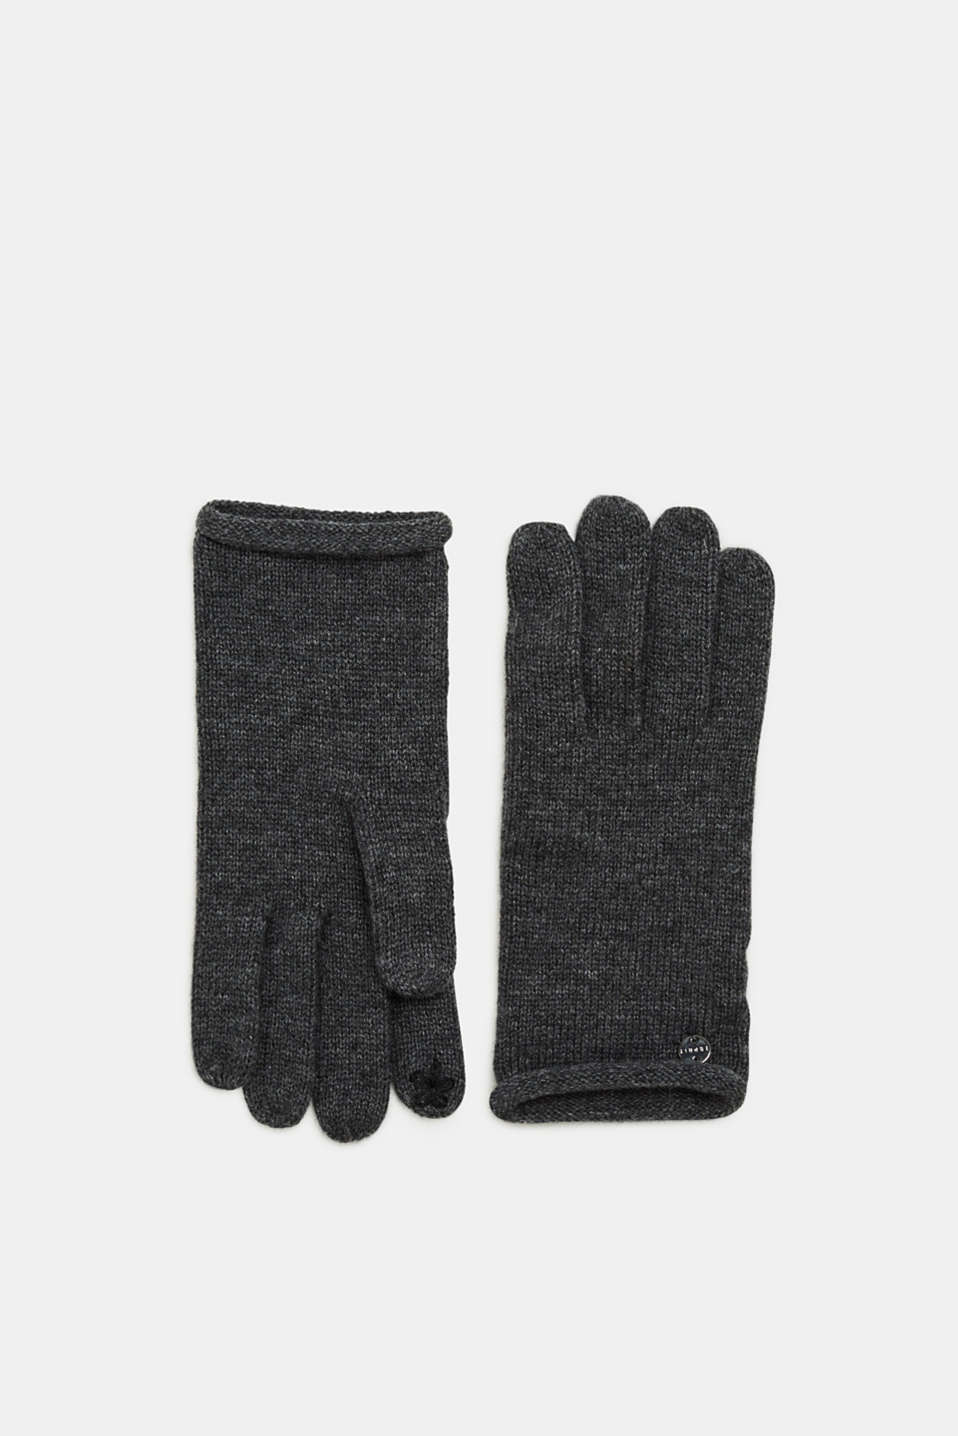 Esprit - In a cashmere/wool blend: gloves with rolled edges